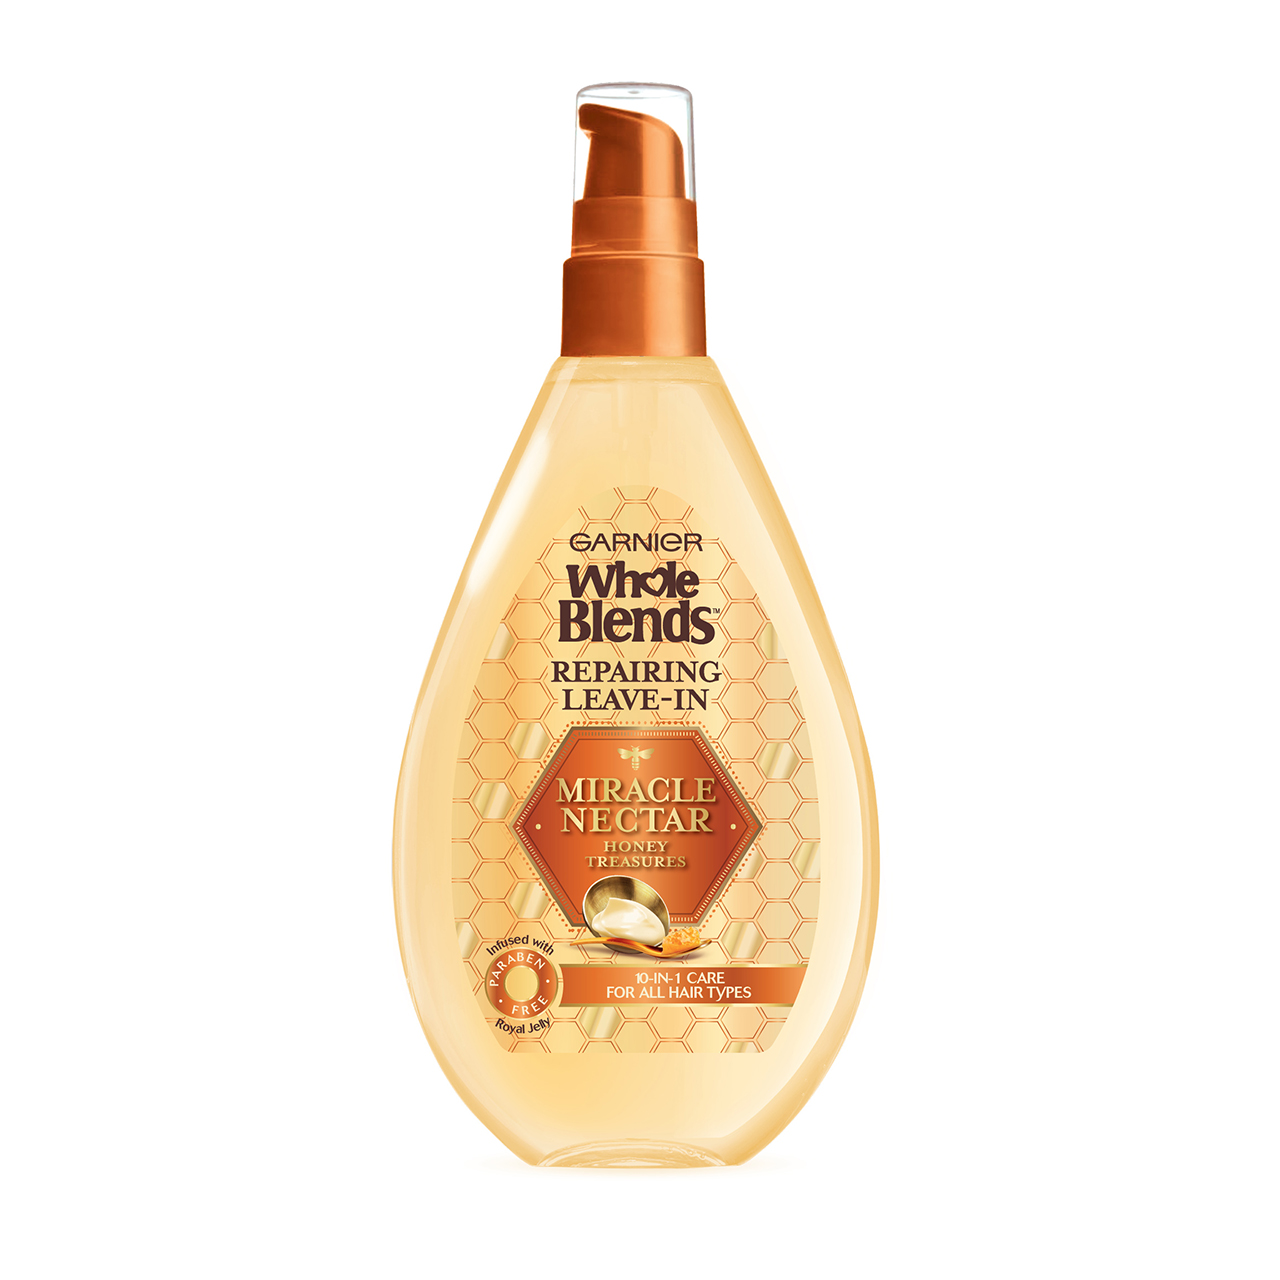 Garnier Whole Blends Miracle Nectar 10-in-1 Leave-In